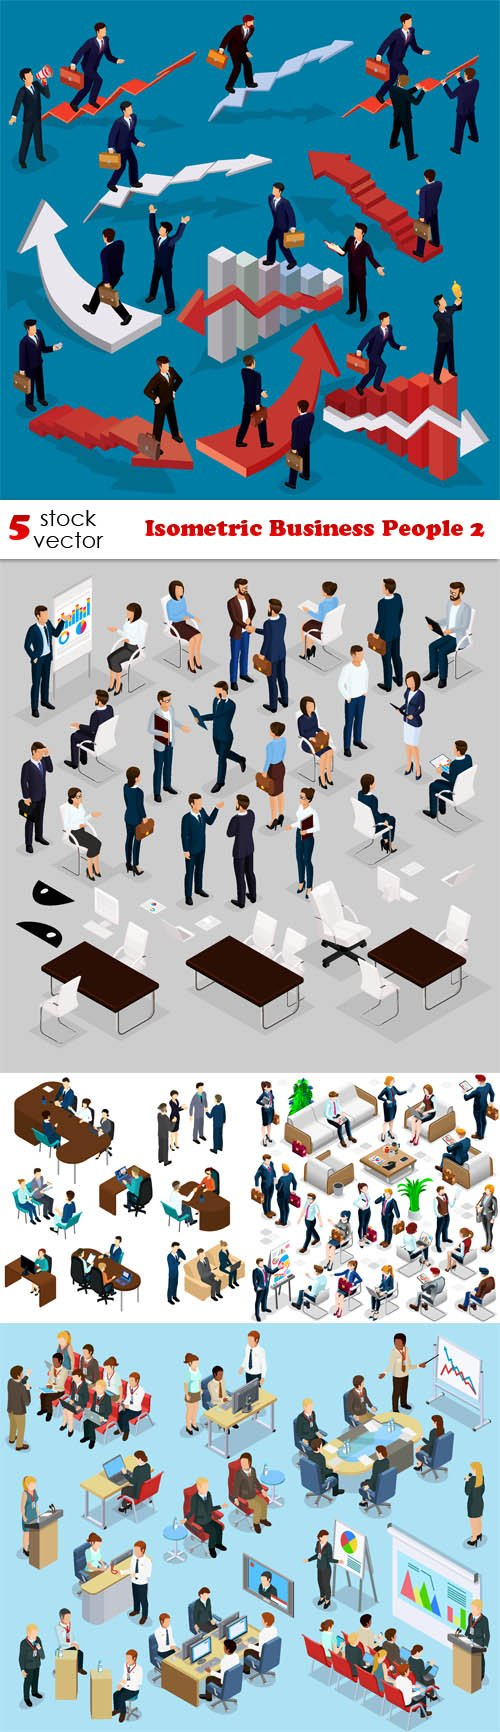 Vectors - Isometric Business People 2